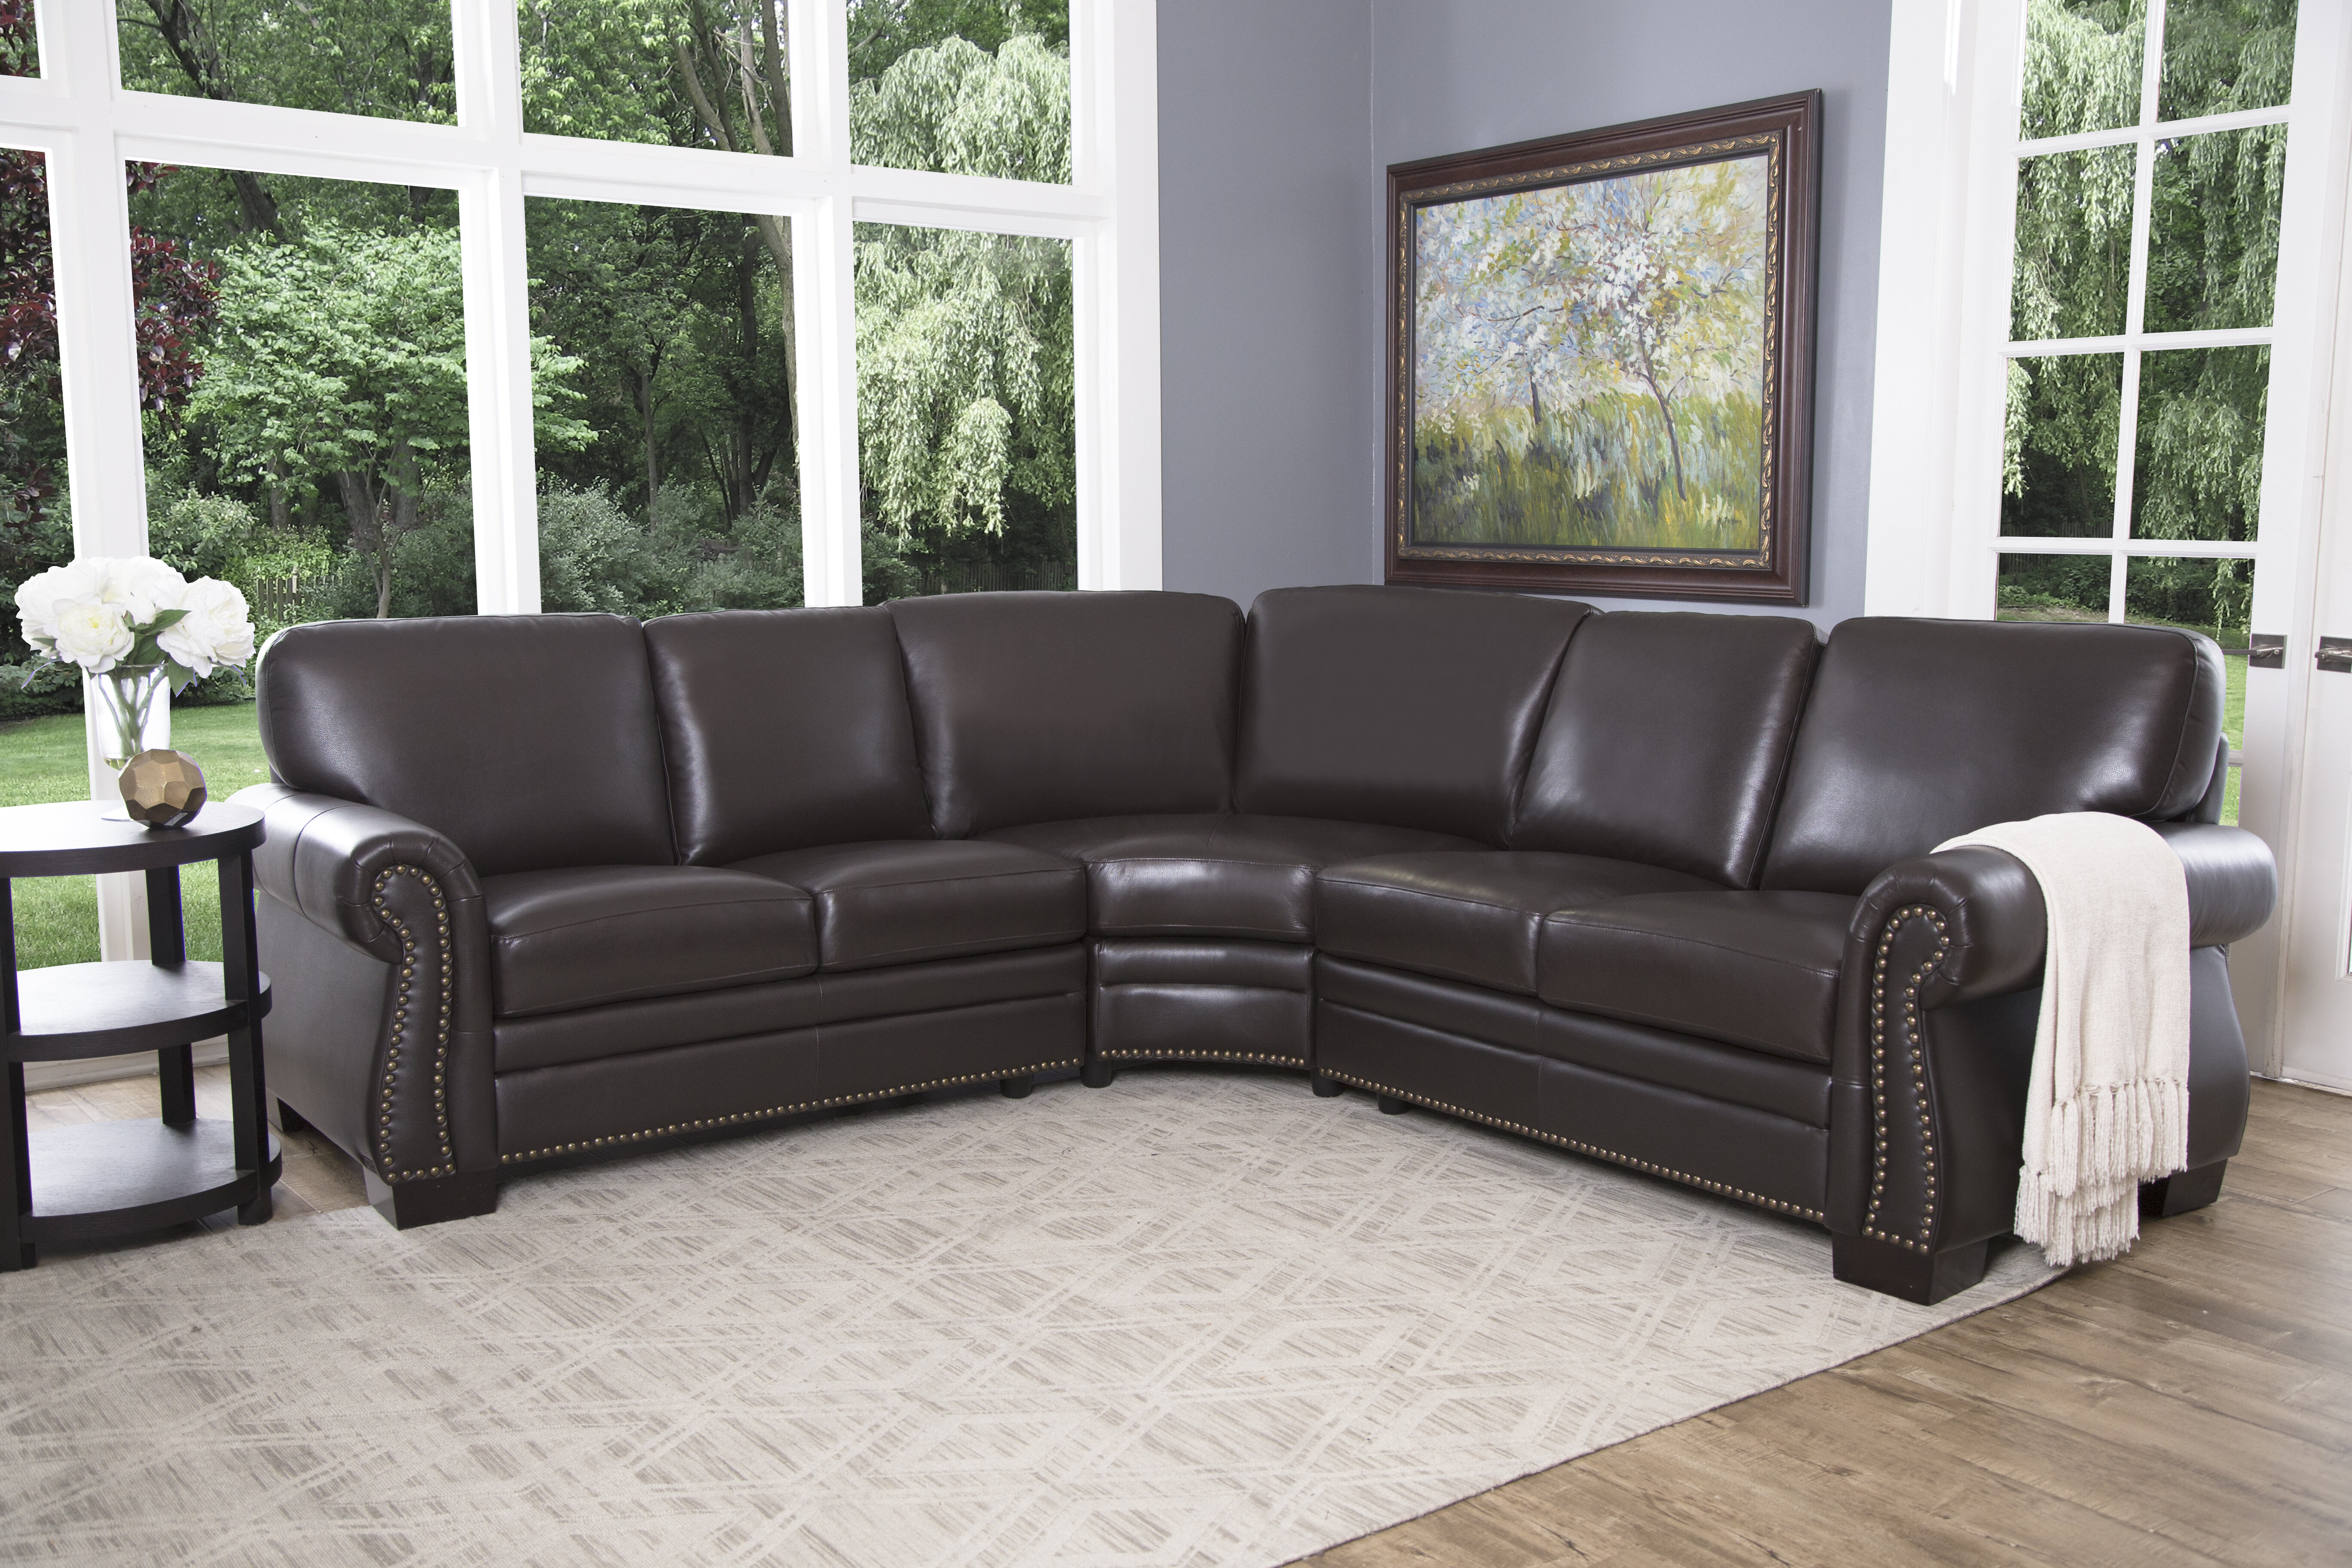 Curved Leather Sectionals You\'ll Love in 2019 | Wayfair